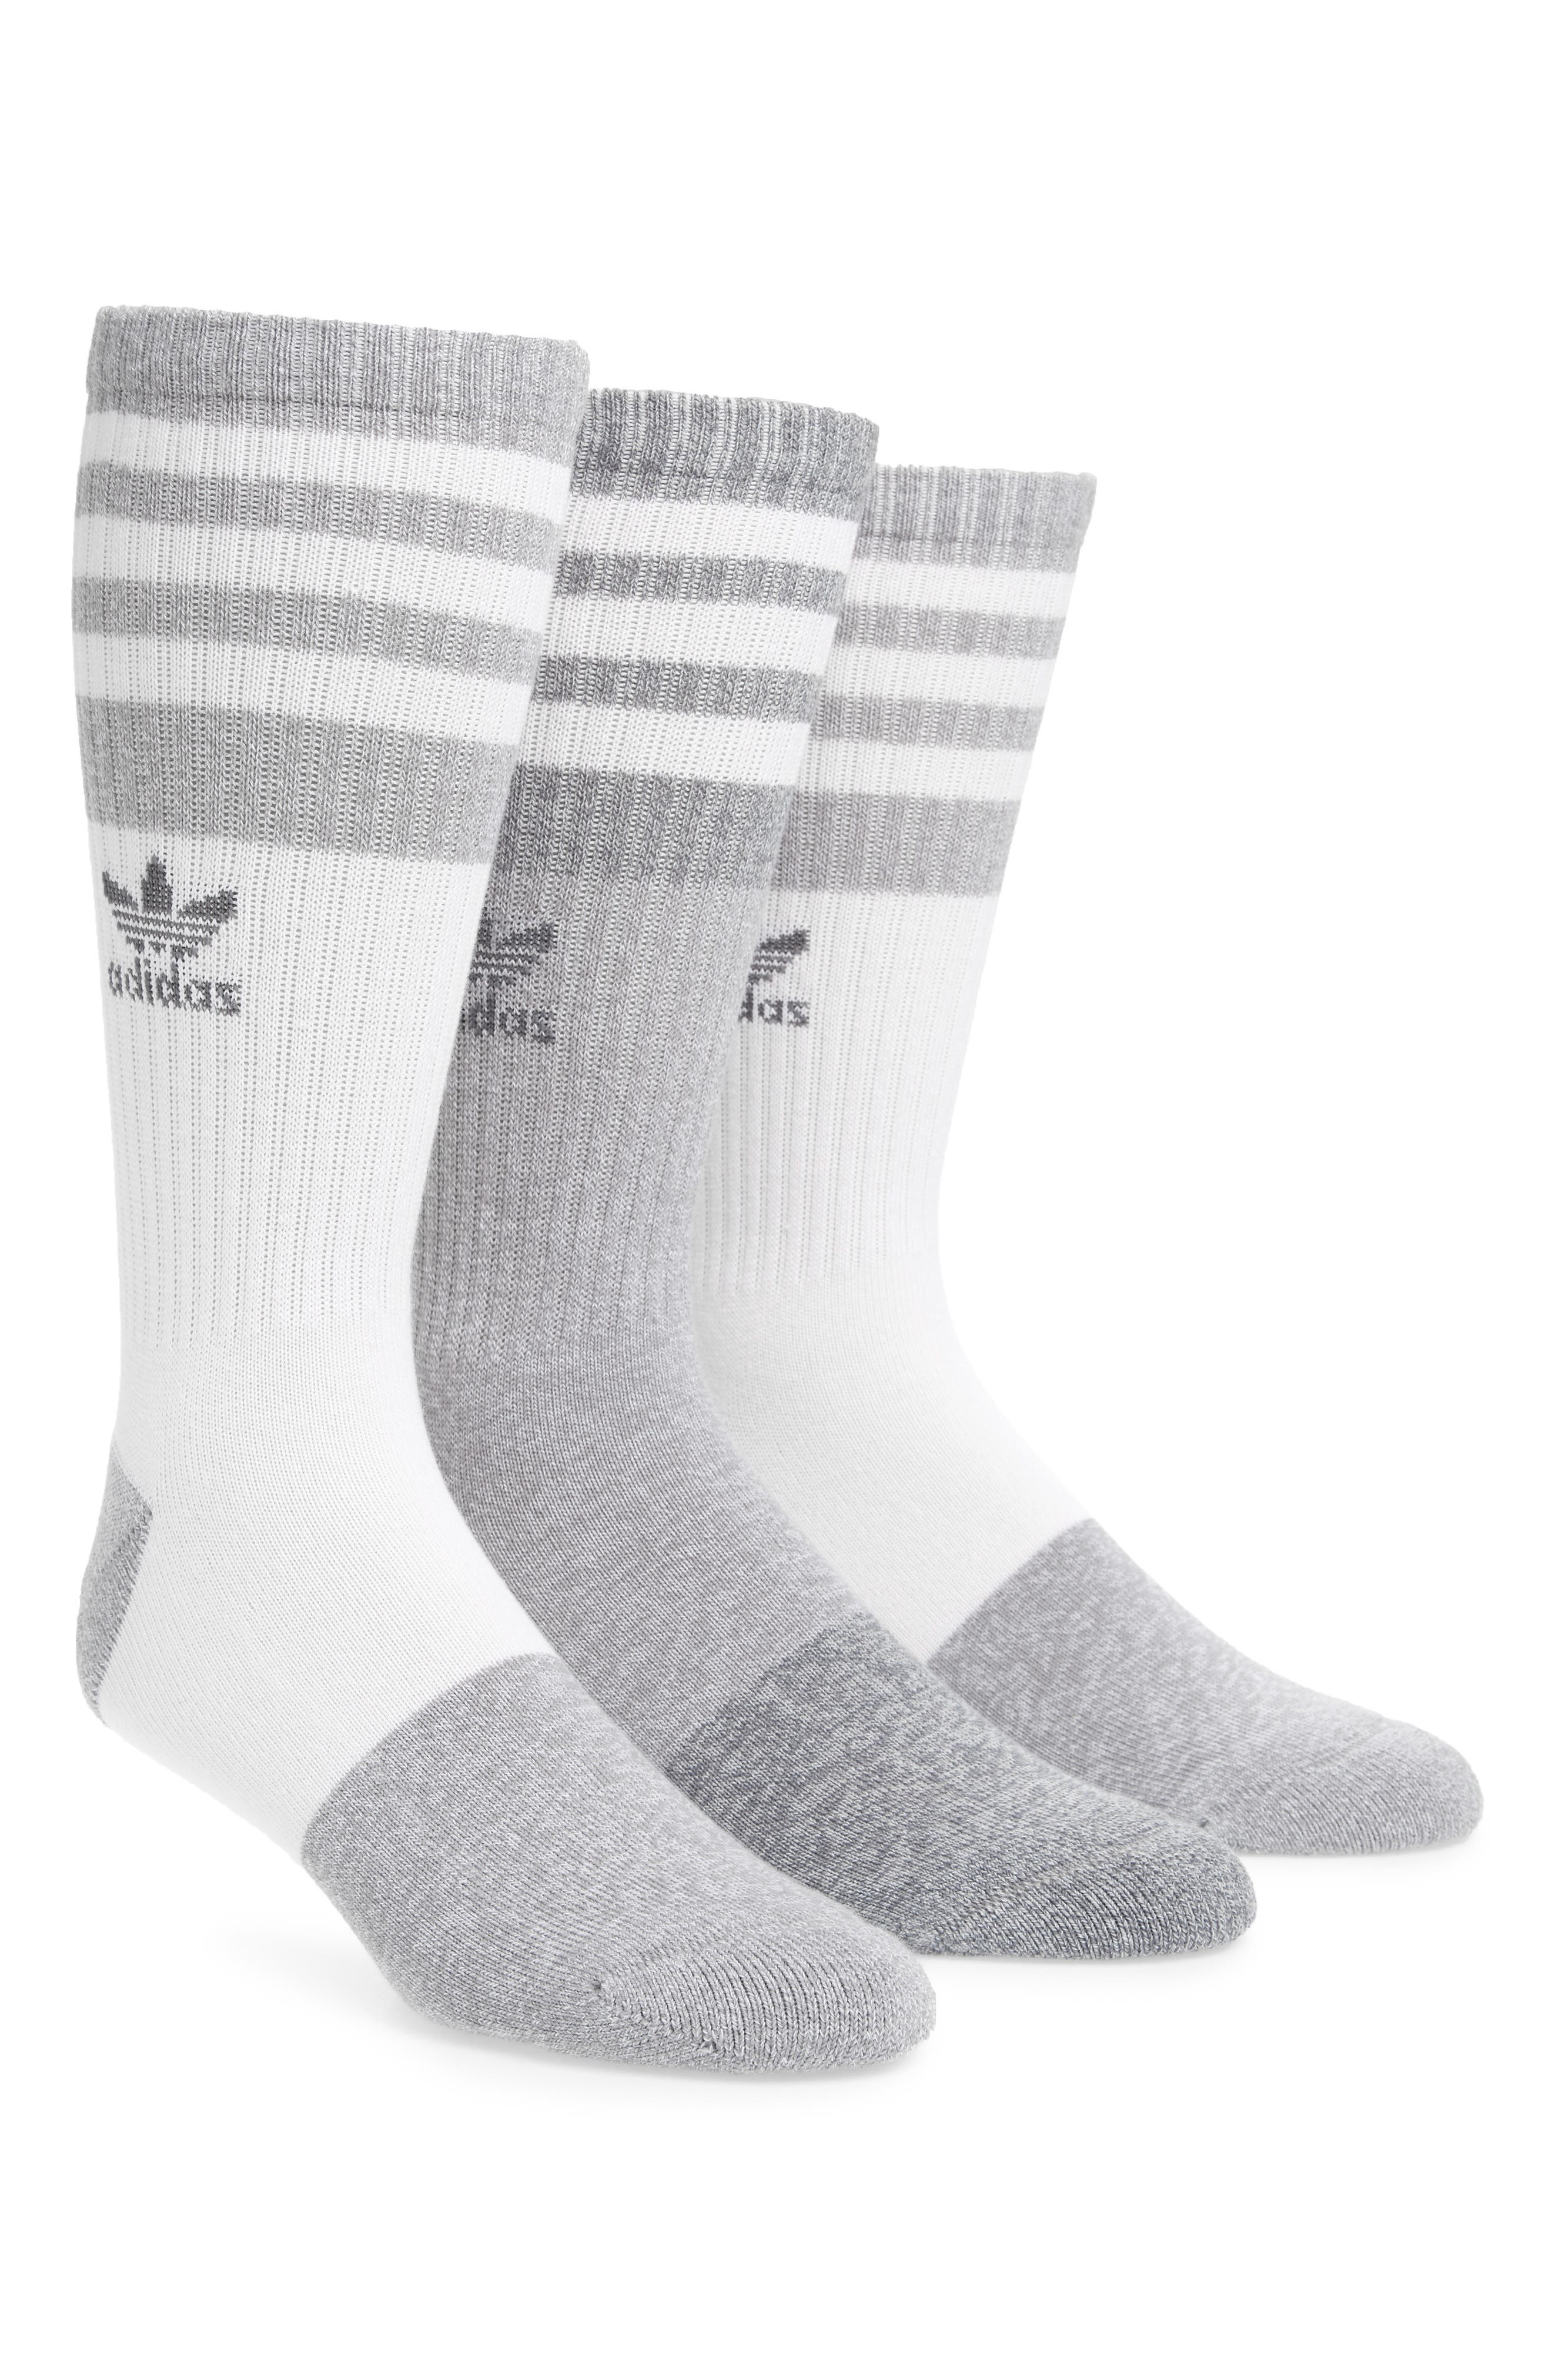 Alternate Image 1 Selected - adidas Originals 3-Pack Stripe Crew Socks